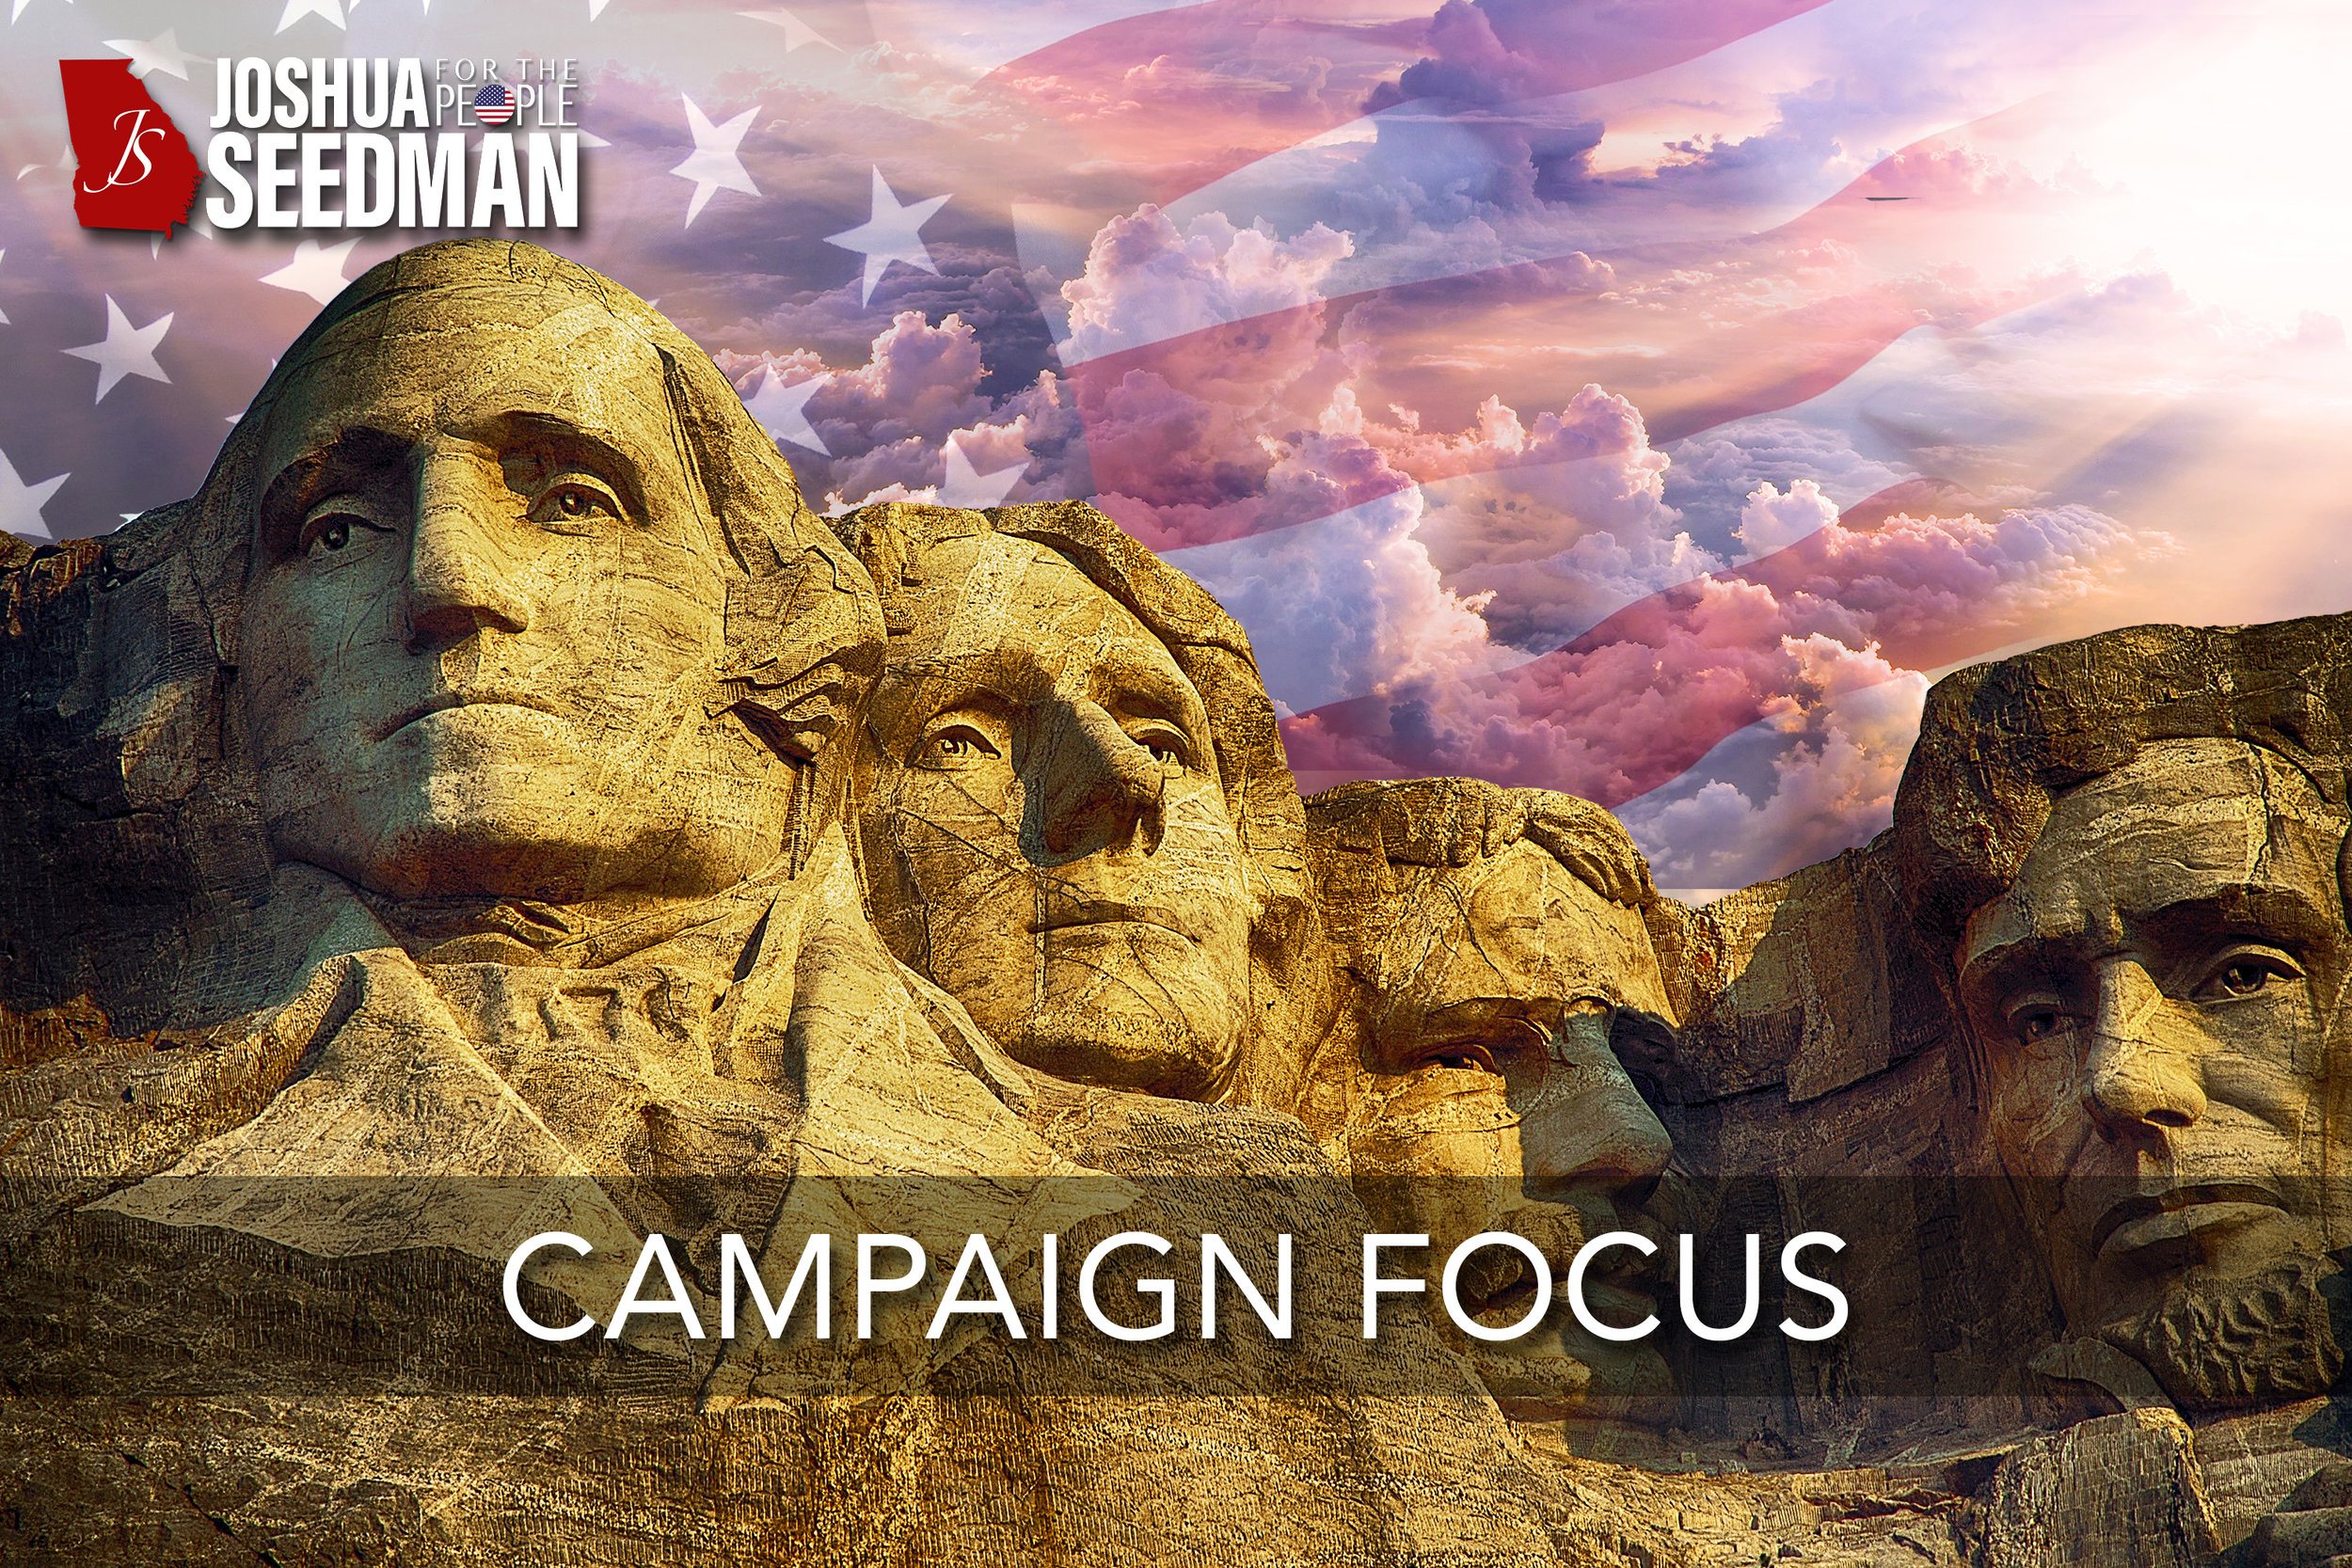 Campaign Focus Thumbnail - For the People (Joshua Seedman).jpg